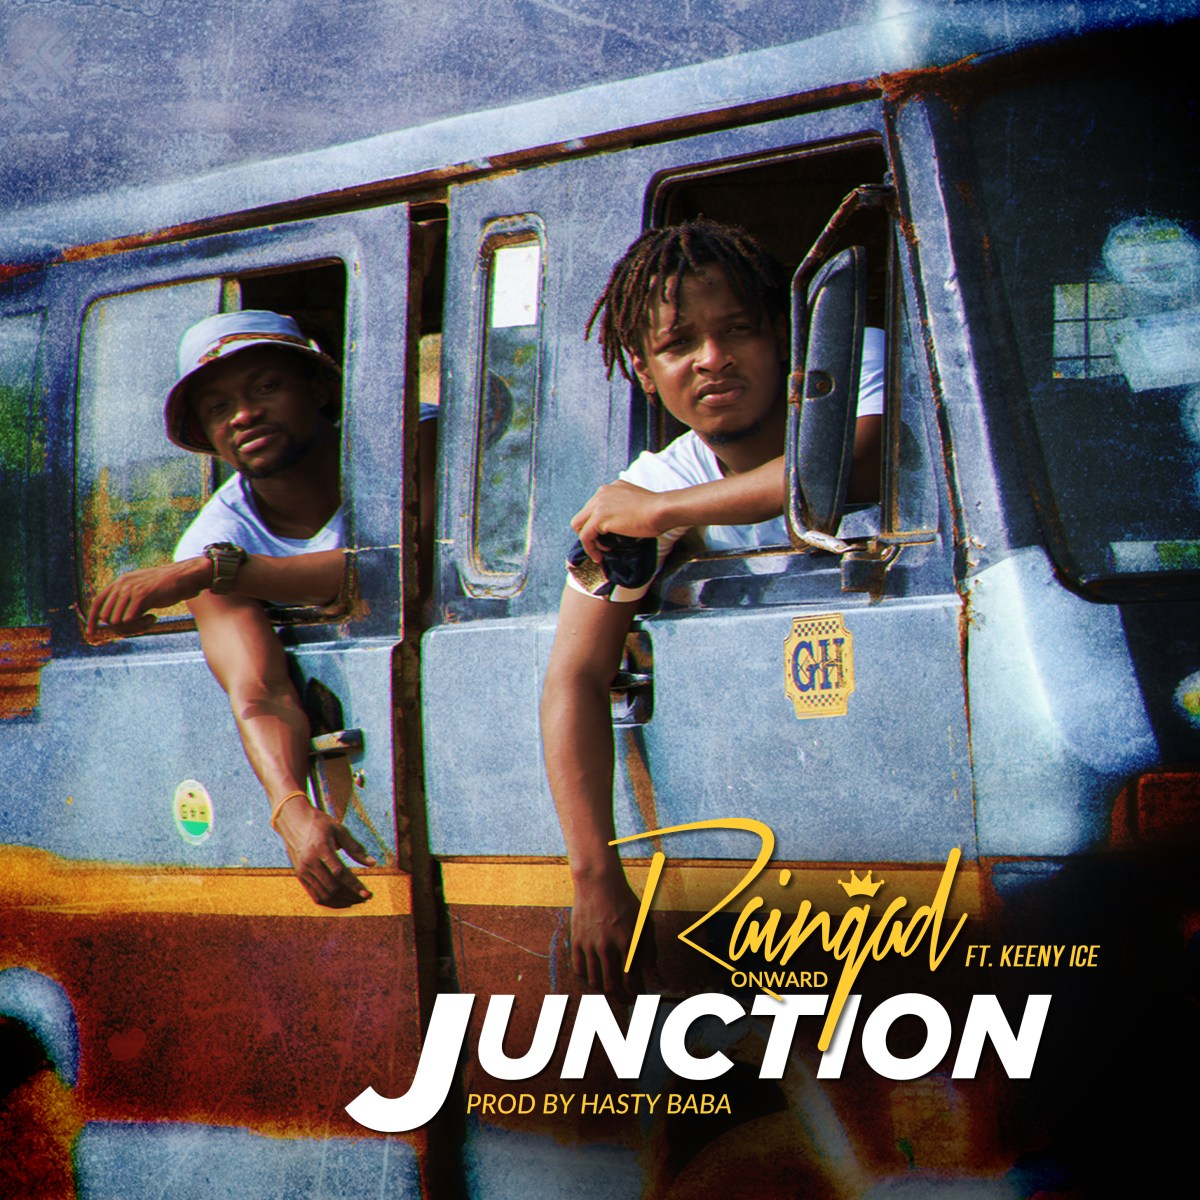 Raingad ft Keeny Ice - Junction (Prod By Hasty Baba)